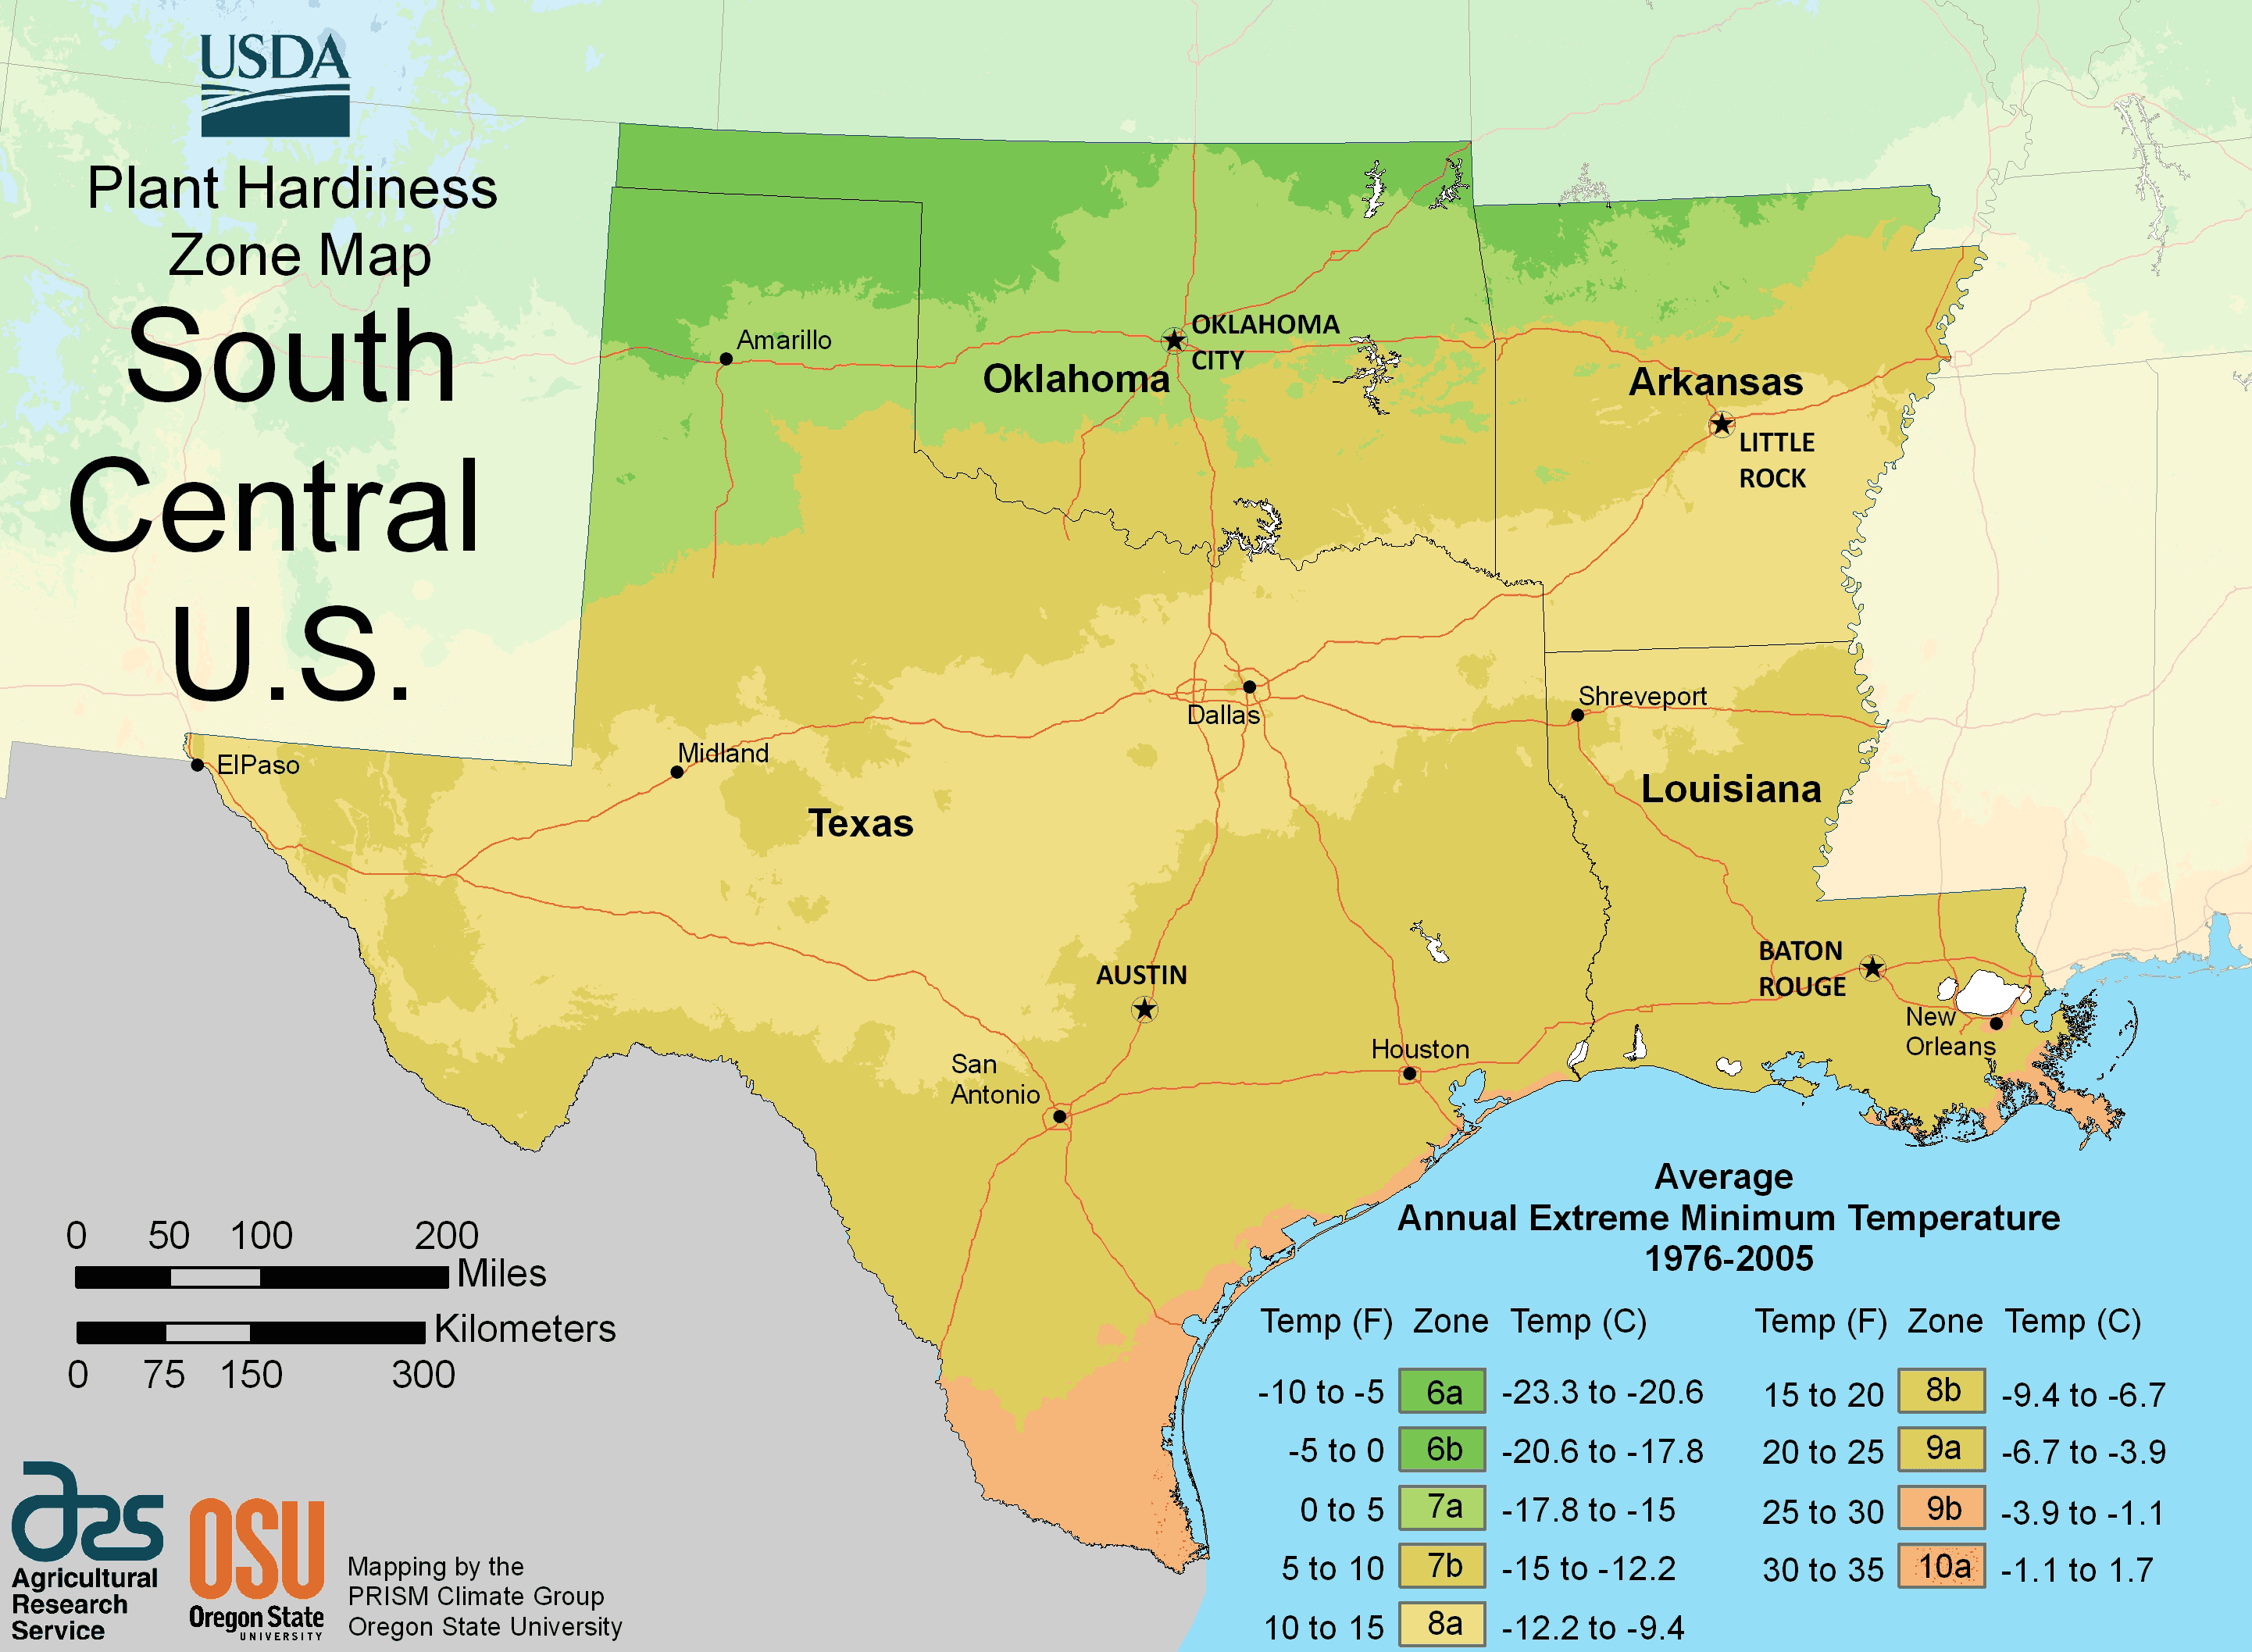 South Central Us Plant Hardiness Zone Map Mapsofnet - Us planting map